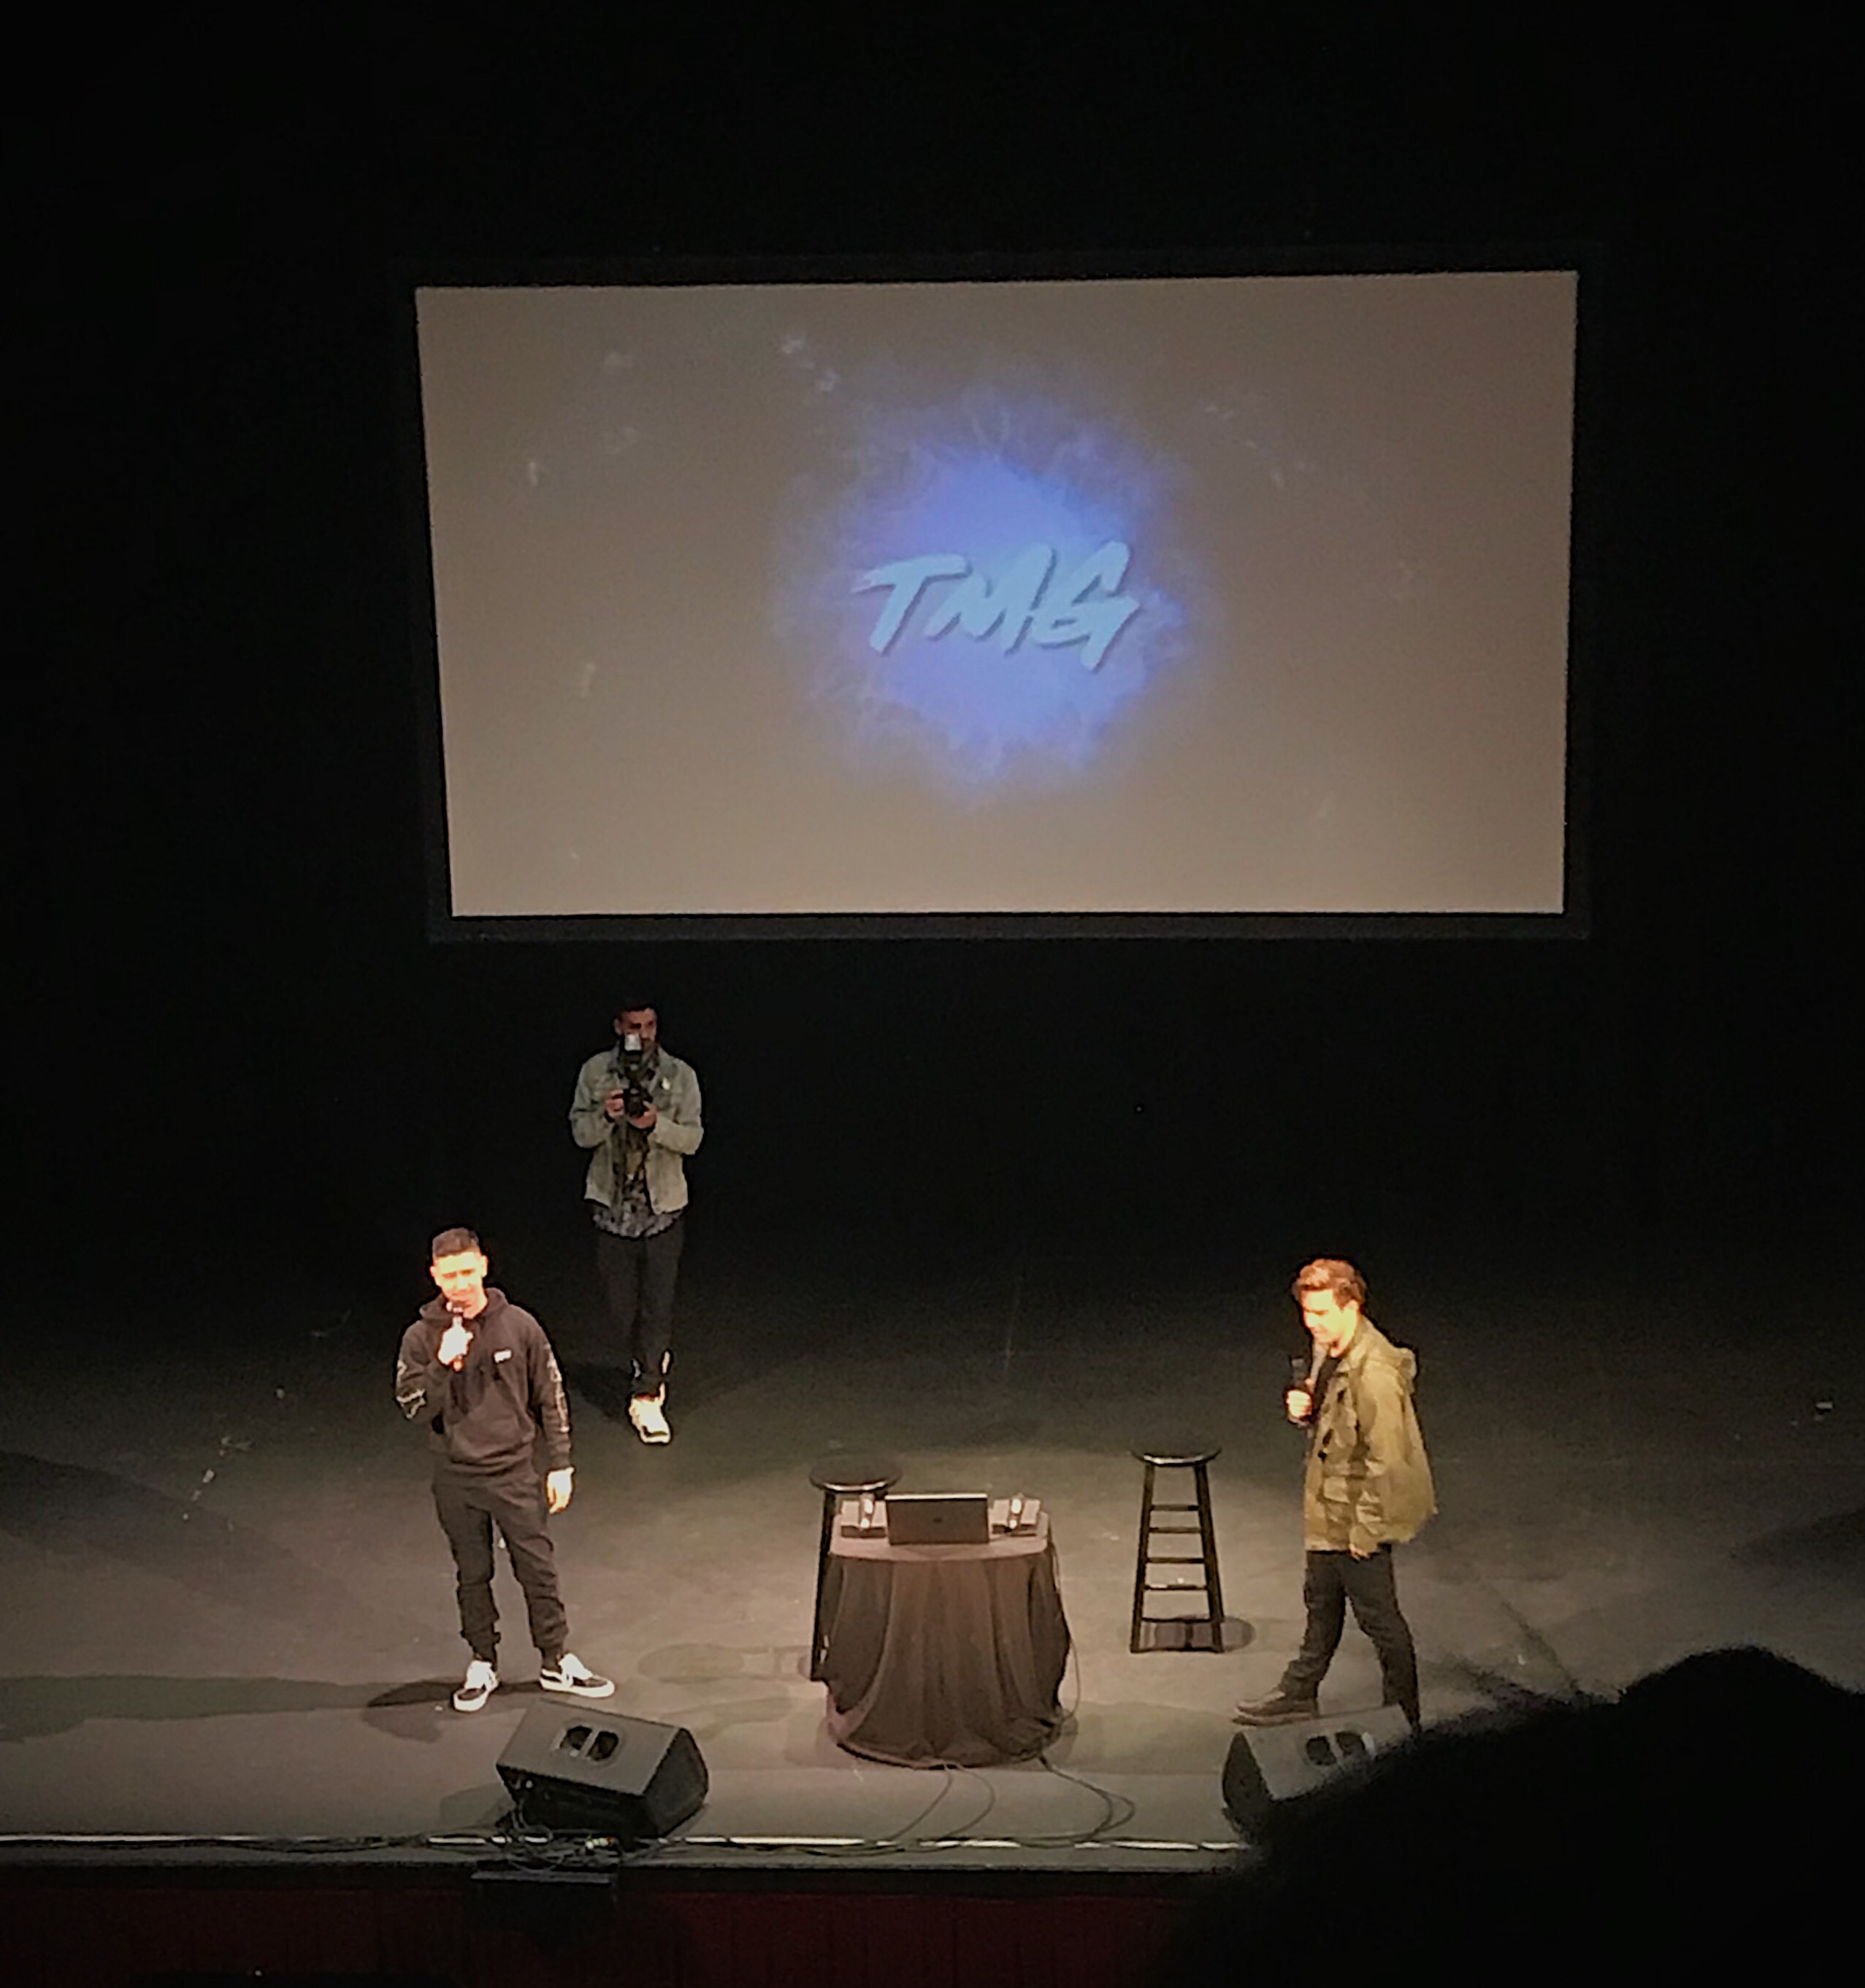 """Noel Miller stands left of Cody Ko on a theater stage. They are both spotlighted by overhead lights. A projector screen above them reads """"TMG"""" on top of a tye-dye blue background."""